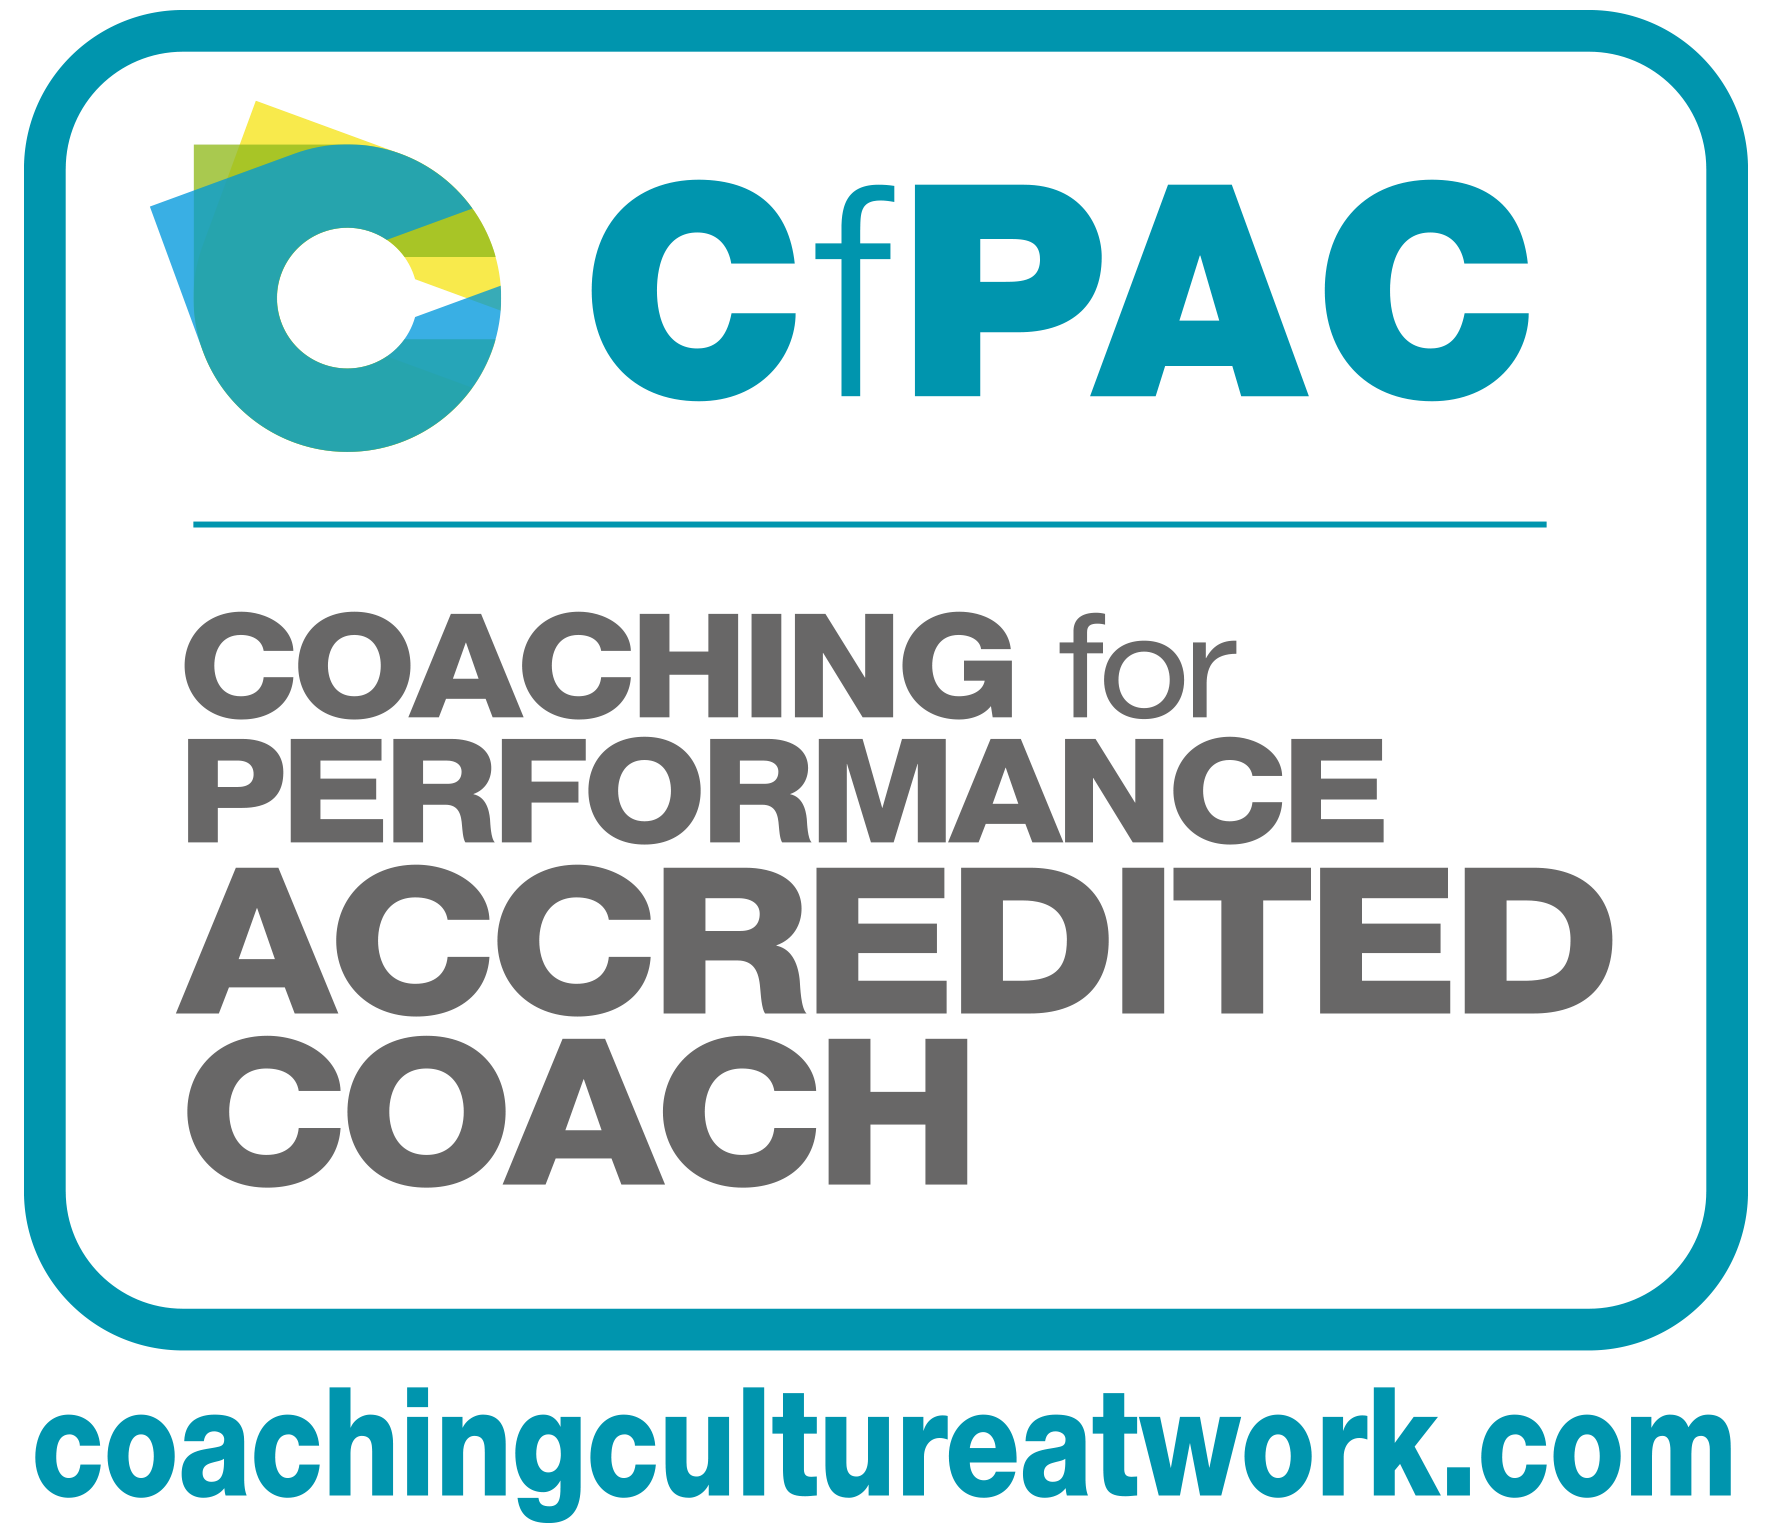 CfPAC Coaching for Performance Accredited Coach